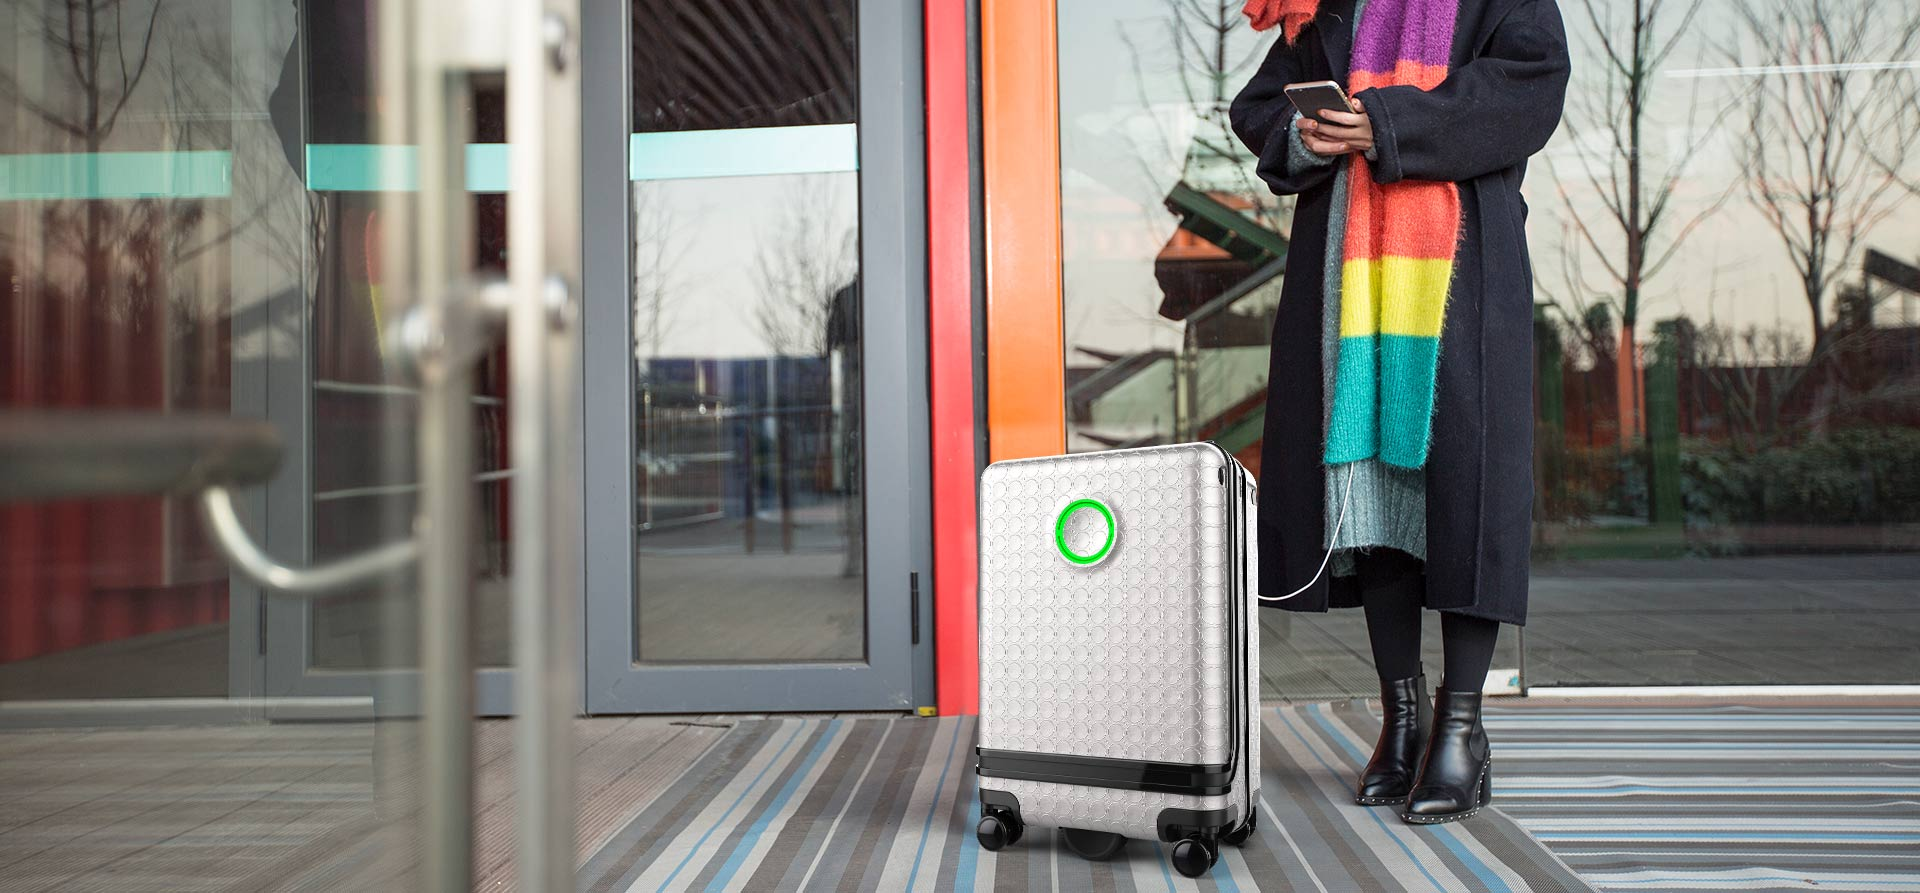 Airwheel SR5 hands-free suitcase